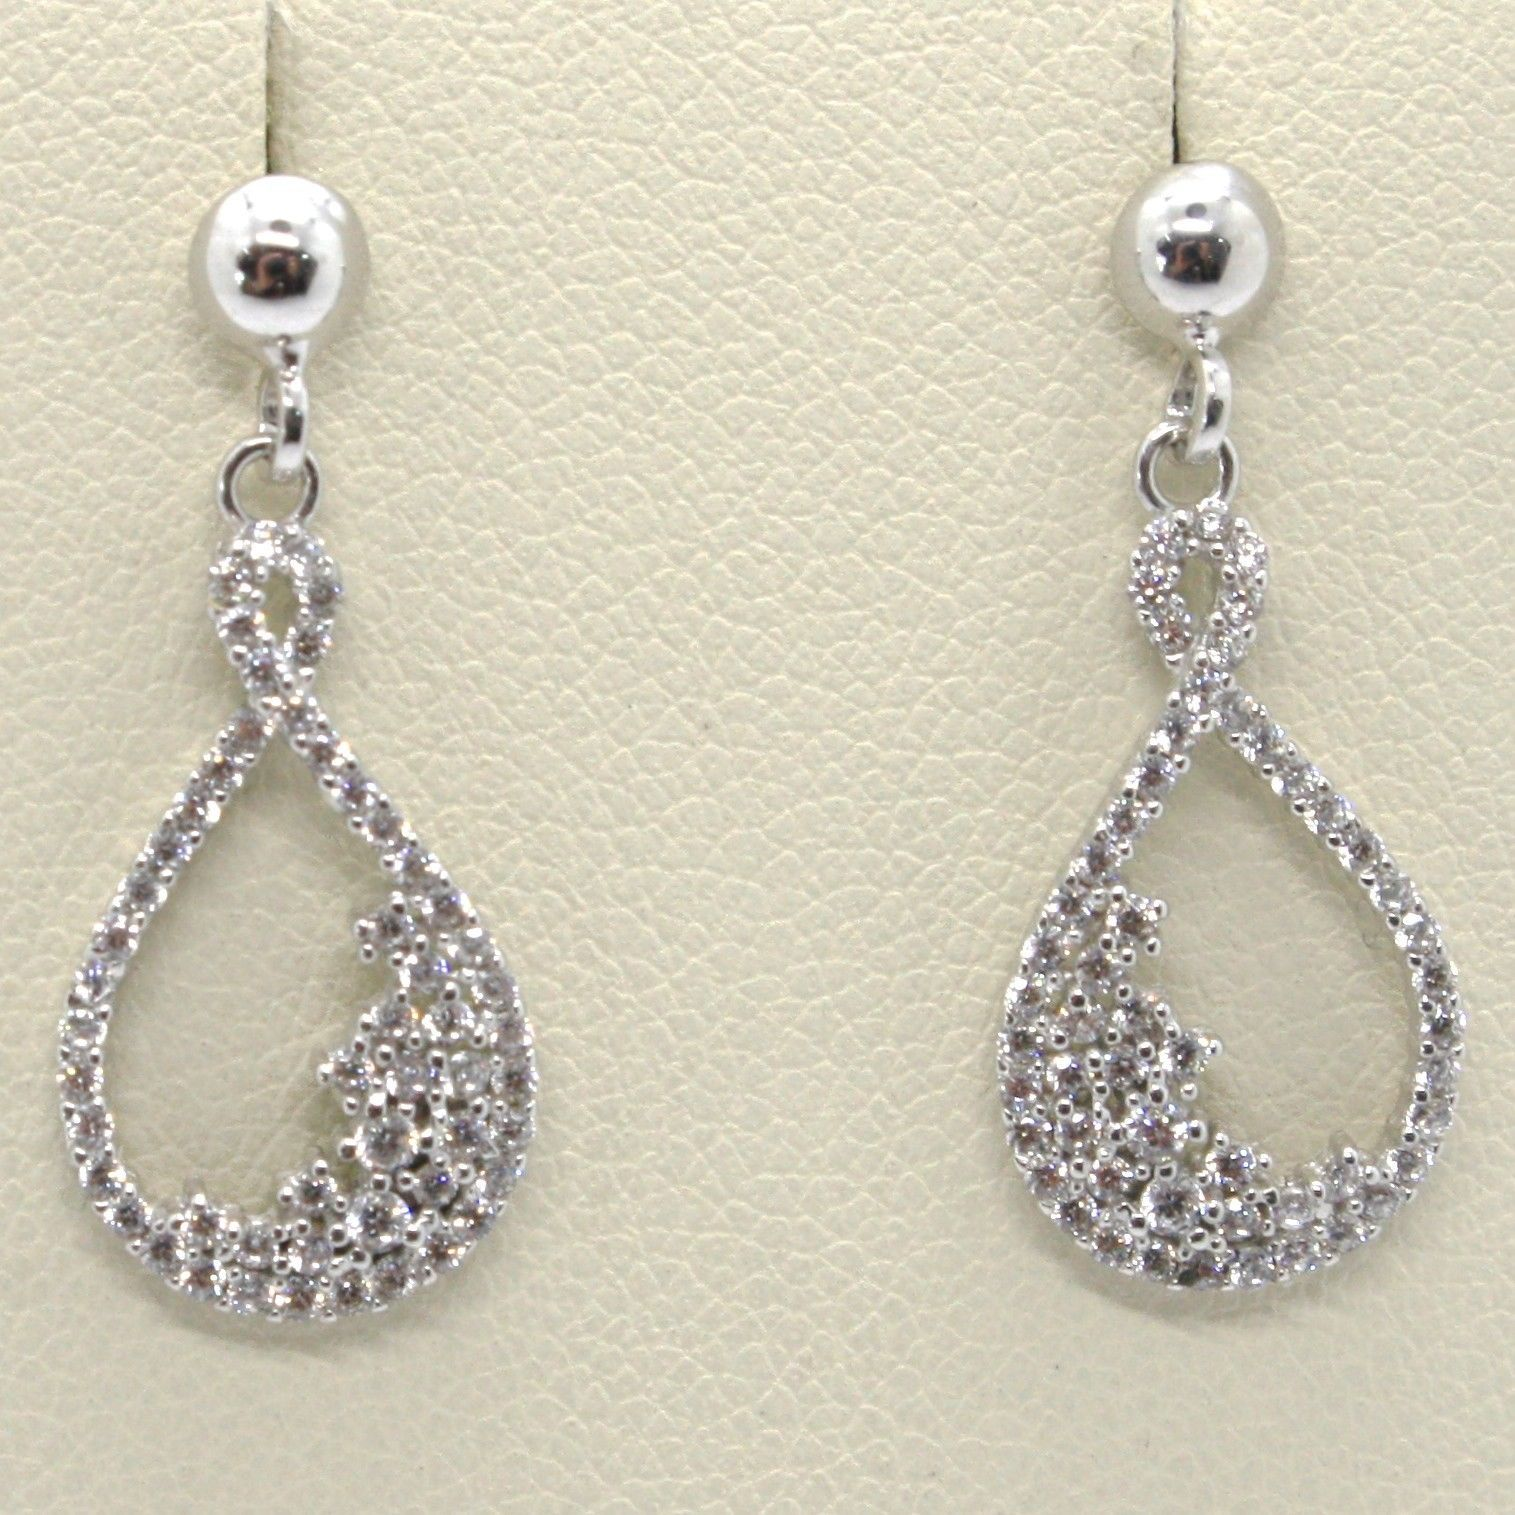 18K WHITE GOLD PENDANT EARRINGS, ZIRCONIA DROP MOON, LENGTH 23 MM, ITALY MADE